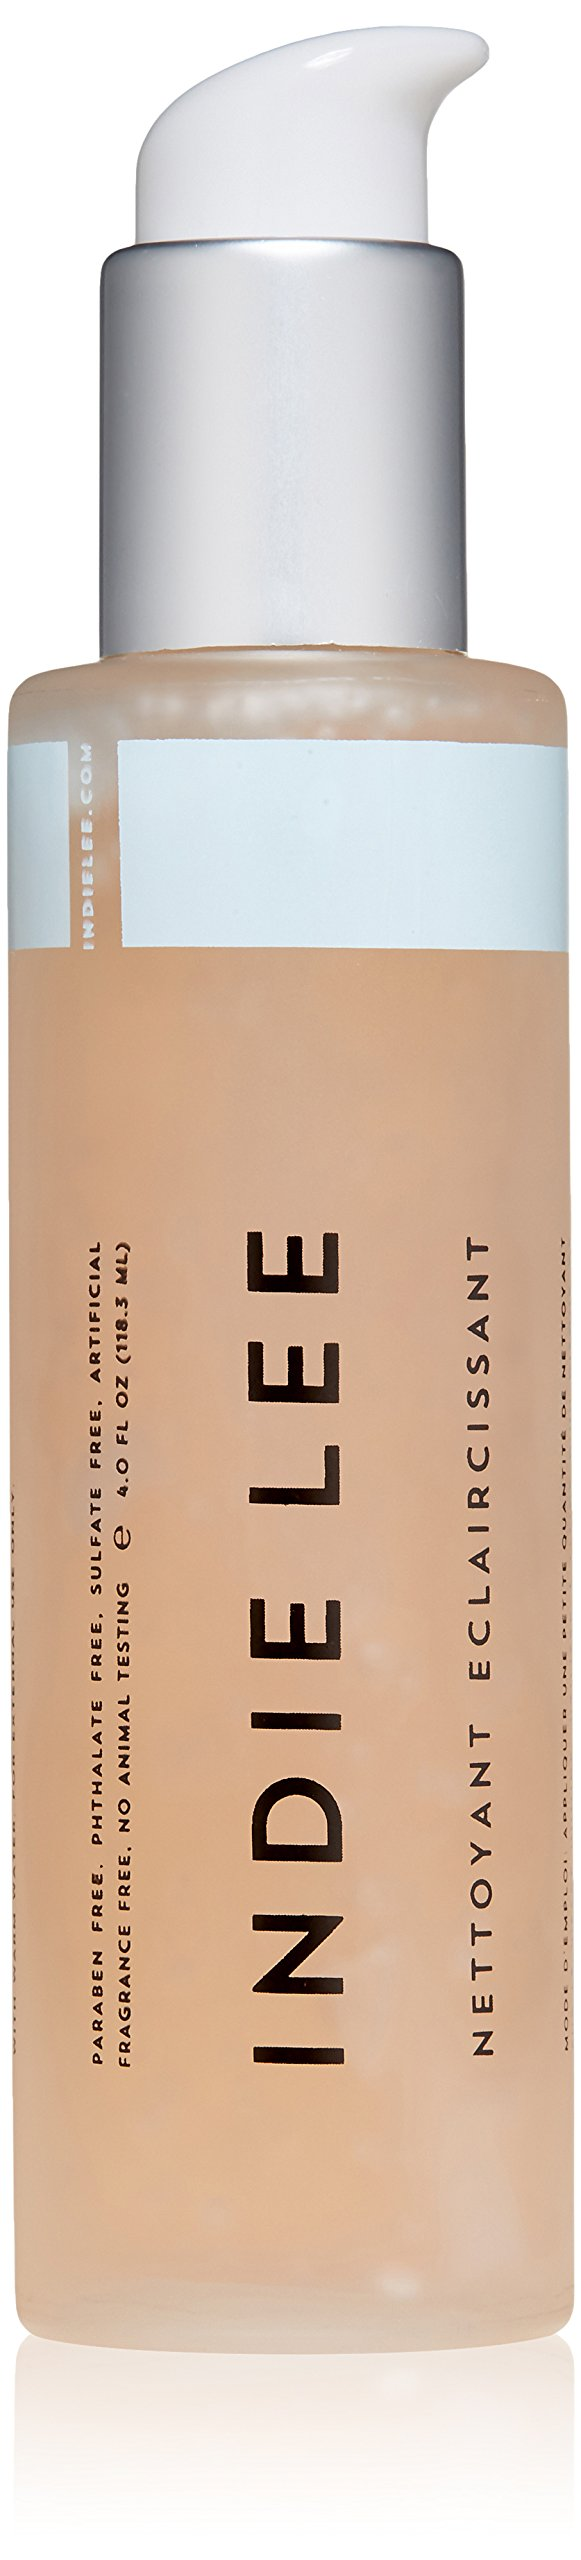 Indie Lee Brightening Cleanser, 4 fl. oz.